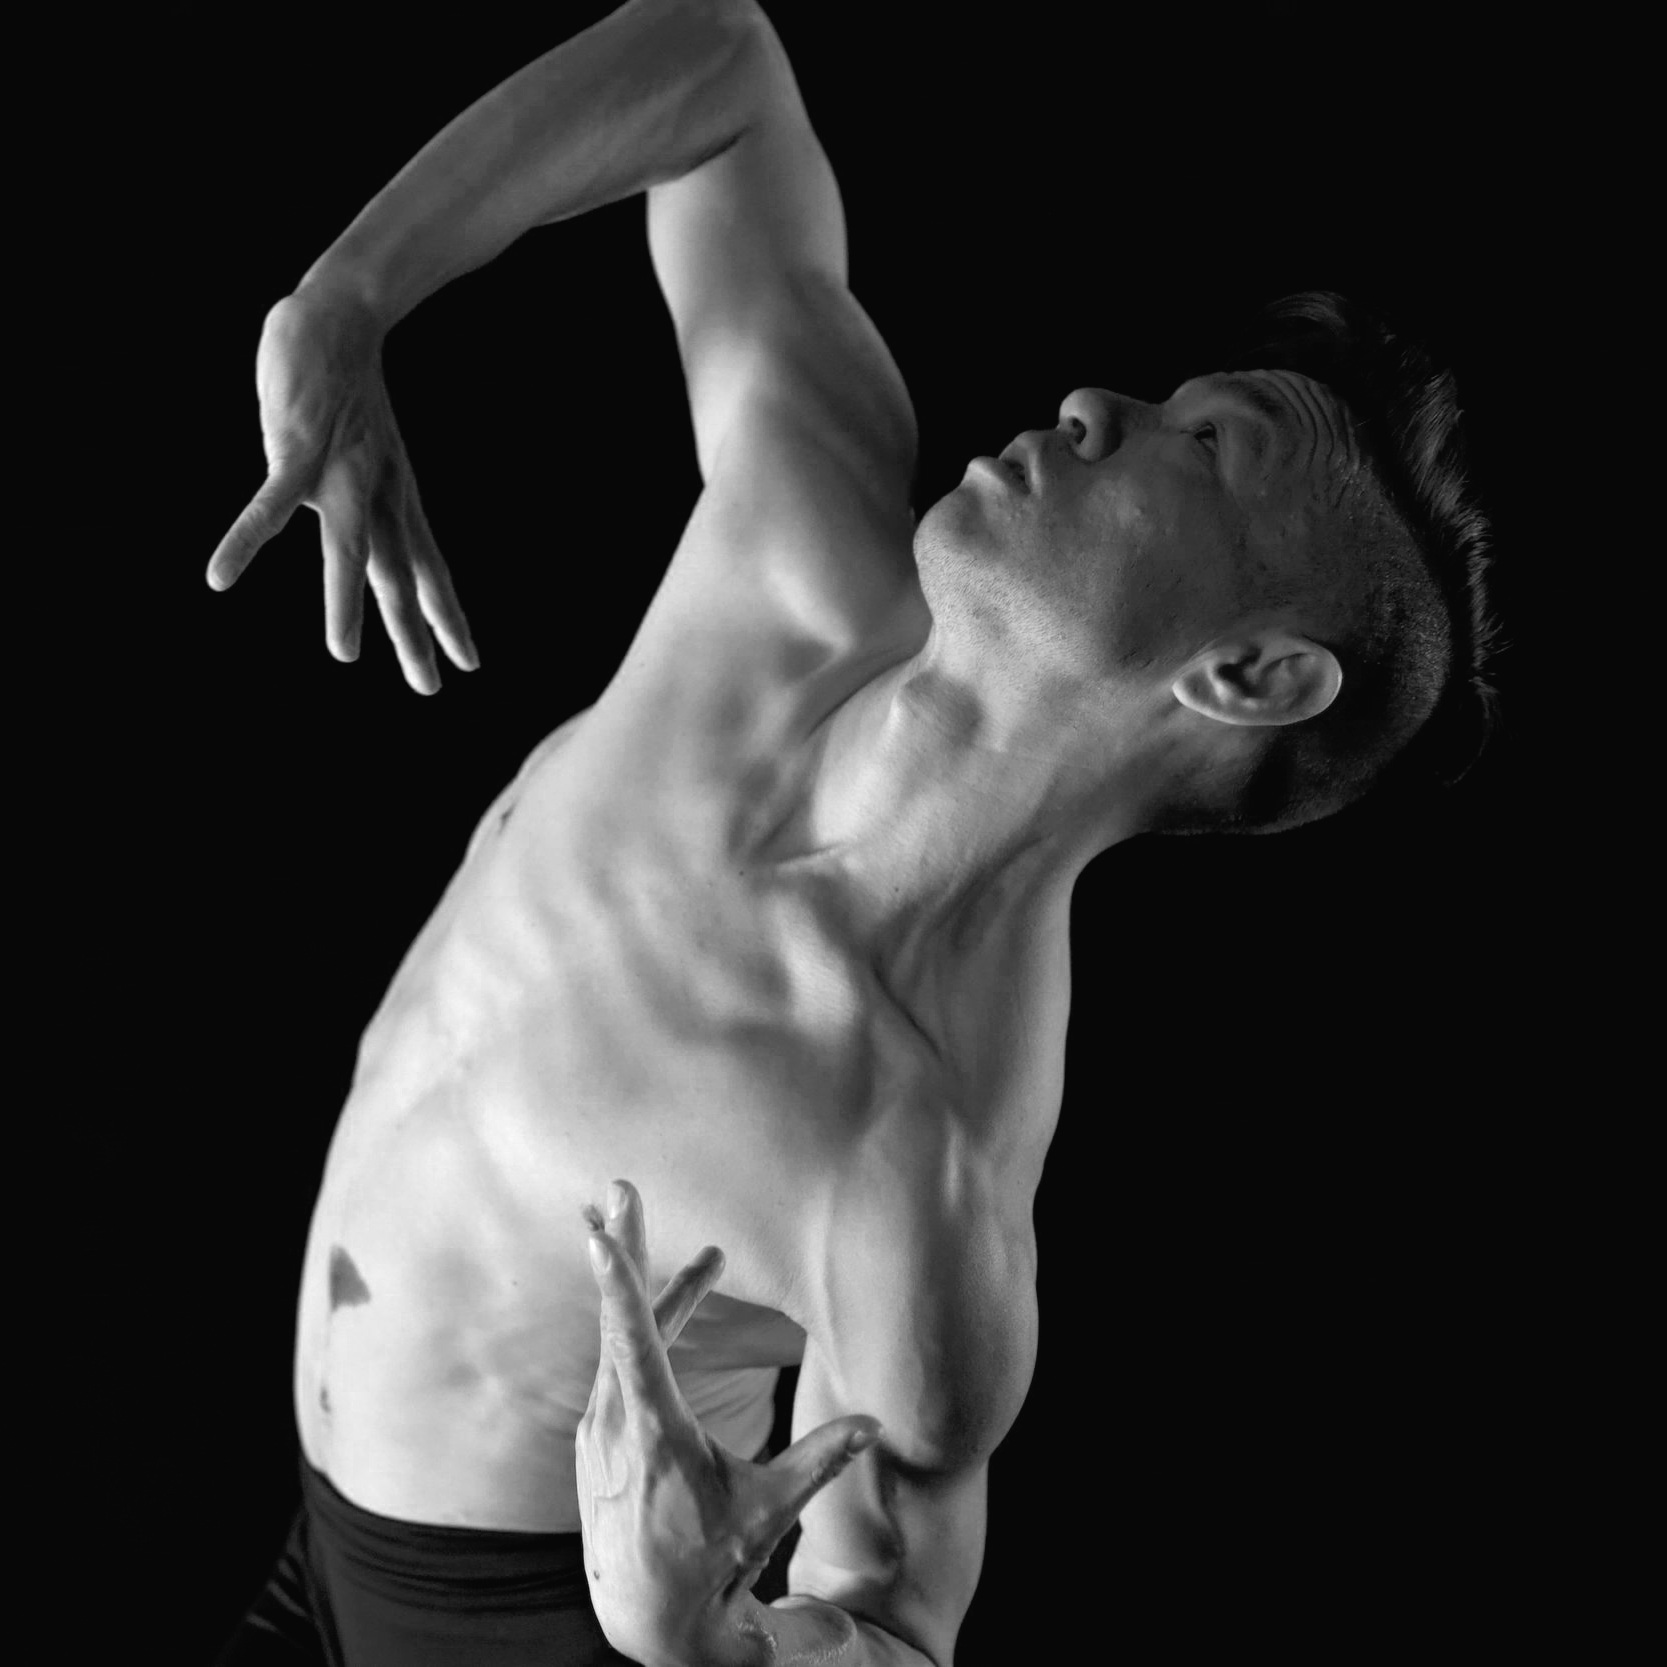 Peter Cheng  is a dancer, choreographer, and performer based in New York City. During his studies at UC Santa Barbara, he trained under the direction of Christopher Pilafian (Jennifer Muller/The Works), Nancy Colahan (Lar Lubovitch Dance Company), and Tonia Shimin (Sokolow Theatre/Dance Ensemble),  After earning his BFA in Dance, Peter continued his professional training with Alonzo King LINES Ballet, ODC/Dance, San Francisco Conservatory of Dance, Post:Ballet, Sidra Bell Dance NY, Visceral Dance Chicago, and Springboard Danse Montréal. He has performed works by KT Nelson, Brenda Way, Robert Dekkers, Mónica Cervantes, Stijn Celis, and Sharon Eyal, among others.  His work has been presented at ODC Theater, the Seattle International Dance Festival, Center Stage Theater, SAFEhouse for the Performing Arts, CPRNY, Ailey Studios, 92nd St. Y/Harkness Dance Center, Judson Church, and 14th St. Y.  Cheng currently works with  Lydia Johnson Dance .  Learn more at  peterandco.org